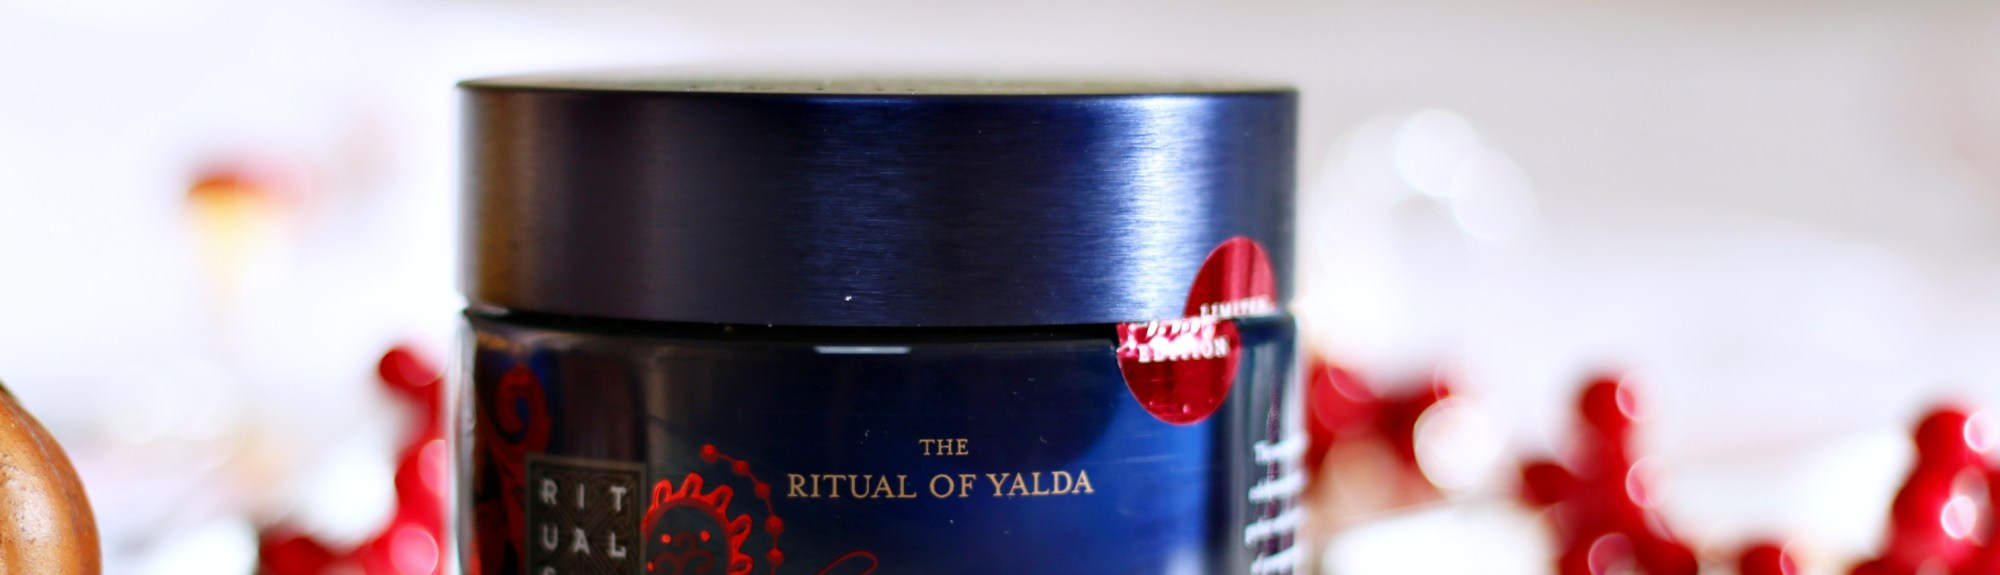 The New Ritual Of Yalda Body Cream From Rituals